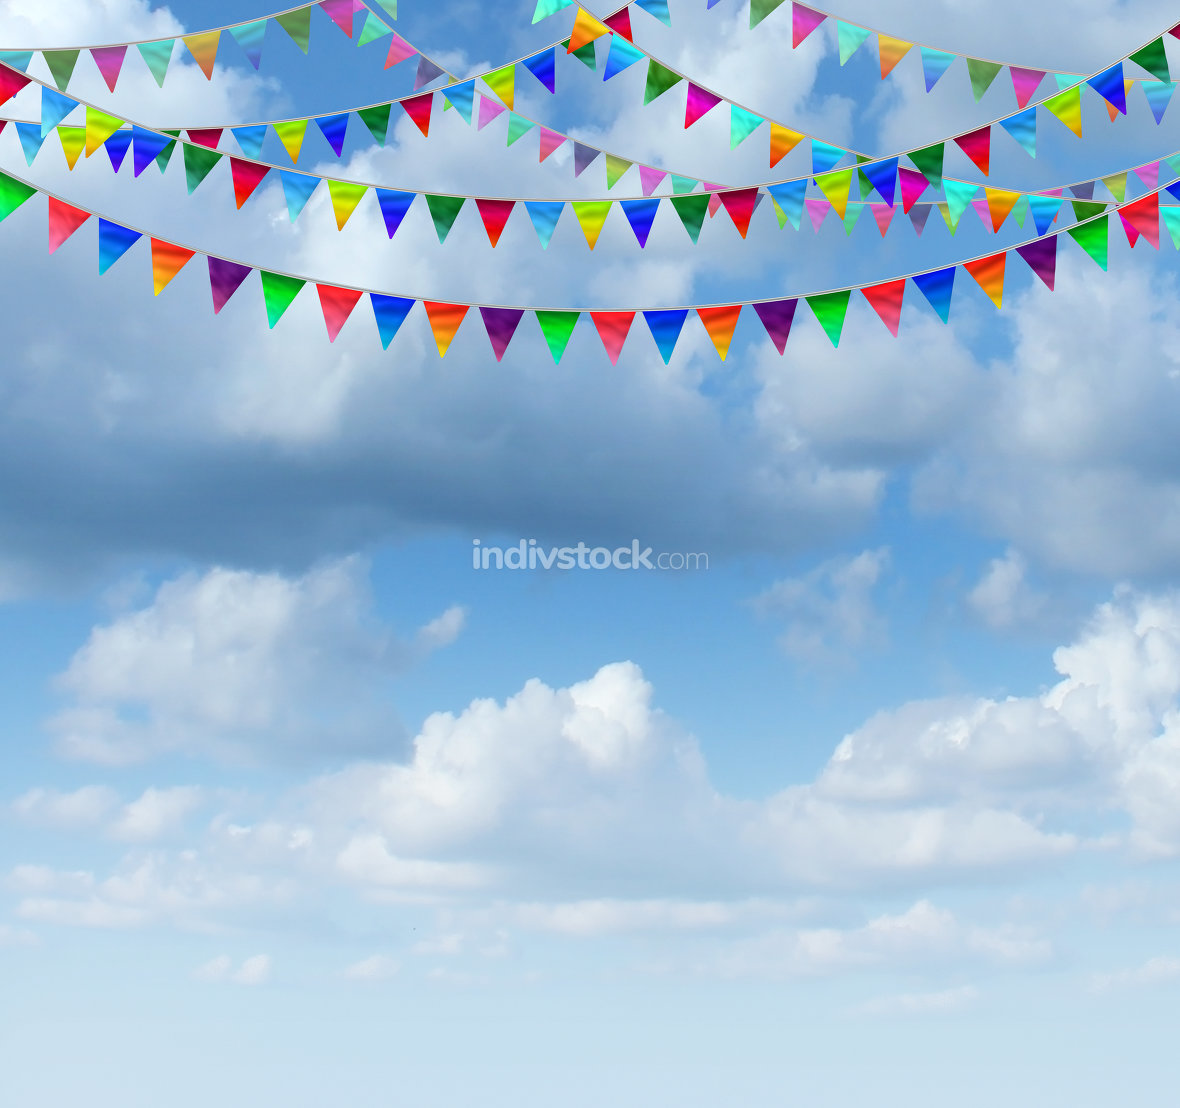 Bunting Flags On A sky